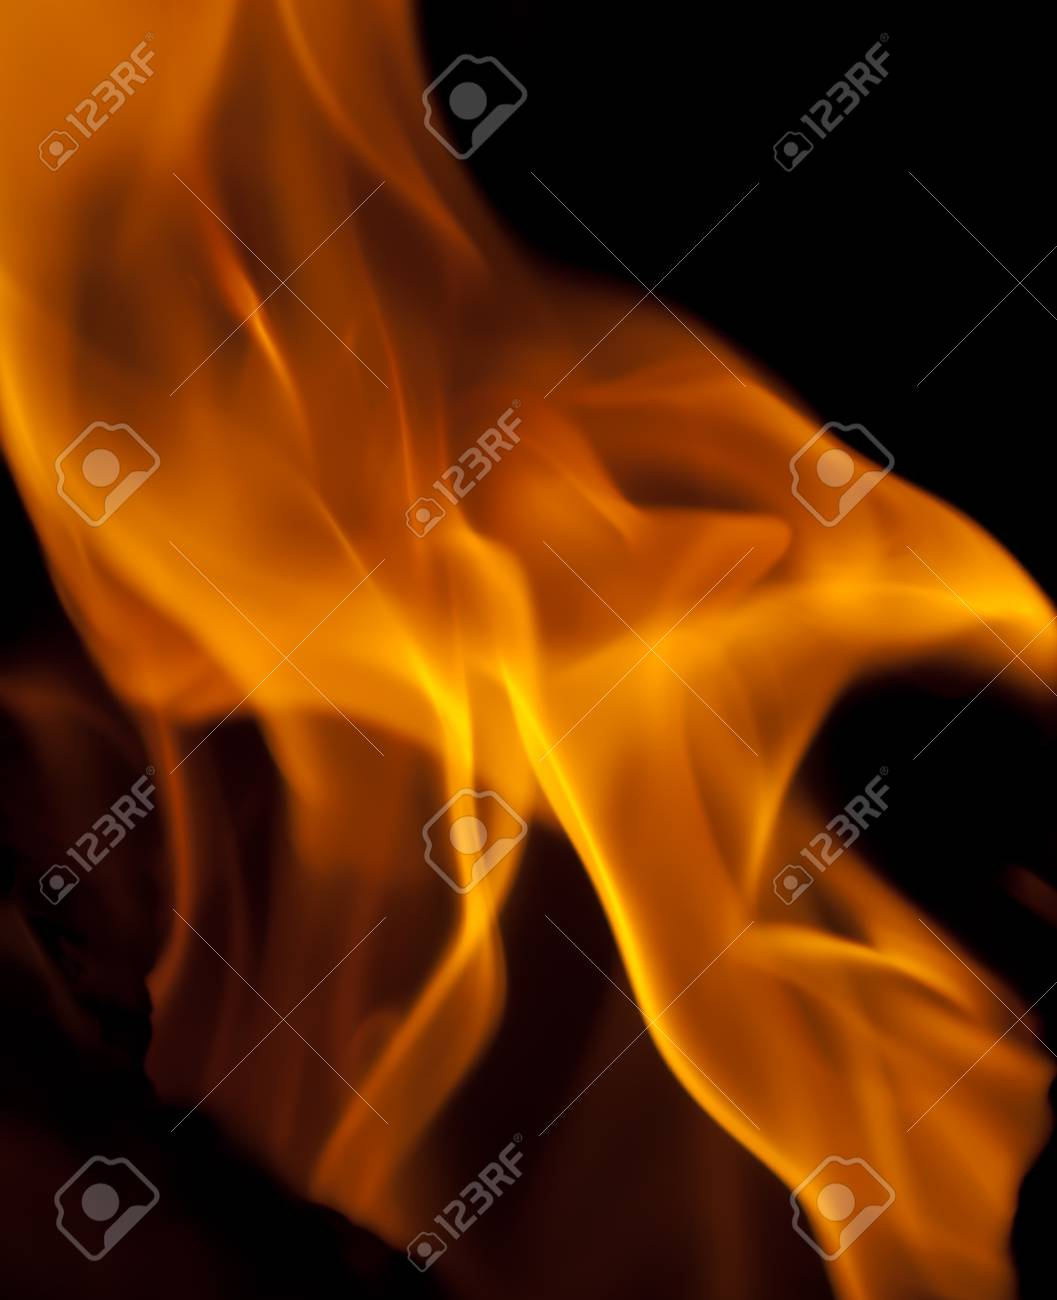 background from a fire, conflagrant firewoods and coals Stock Photo - 9271192